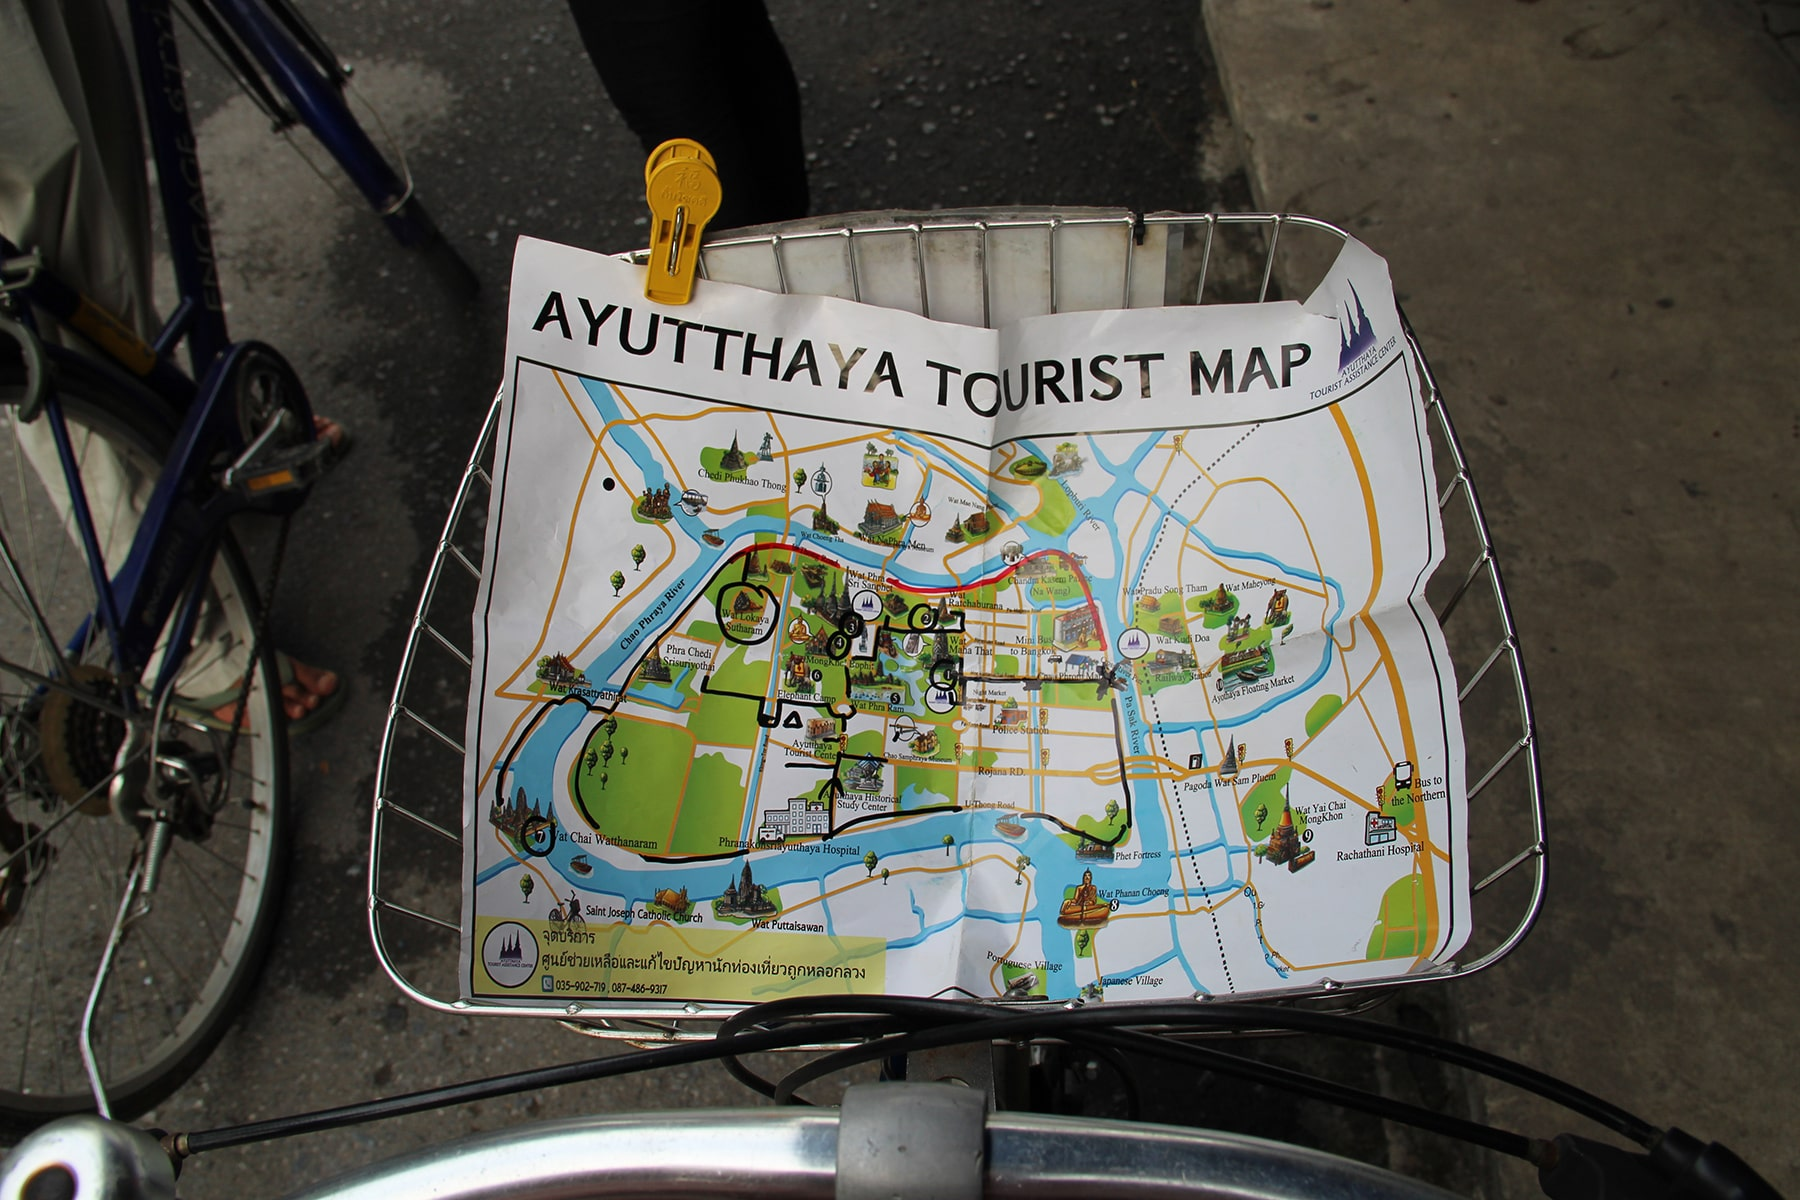 Map of the Ayutthaya site on our bicycle